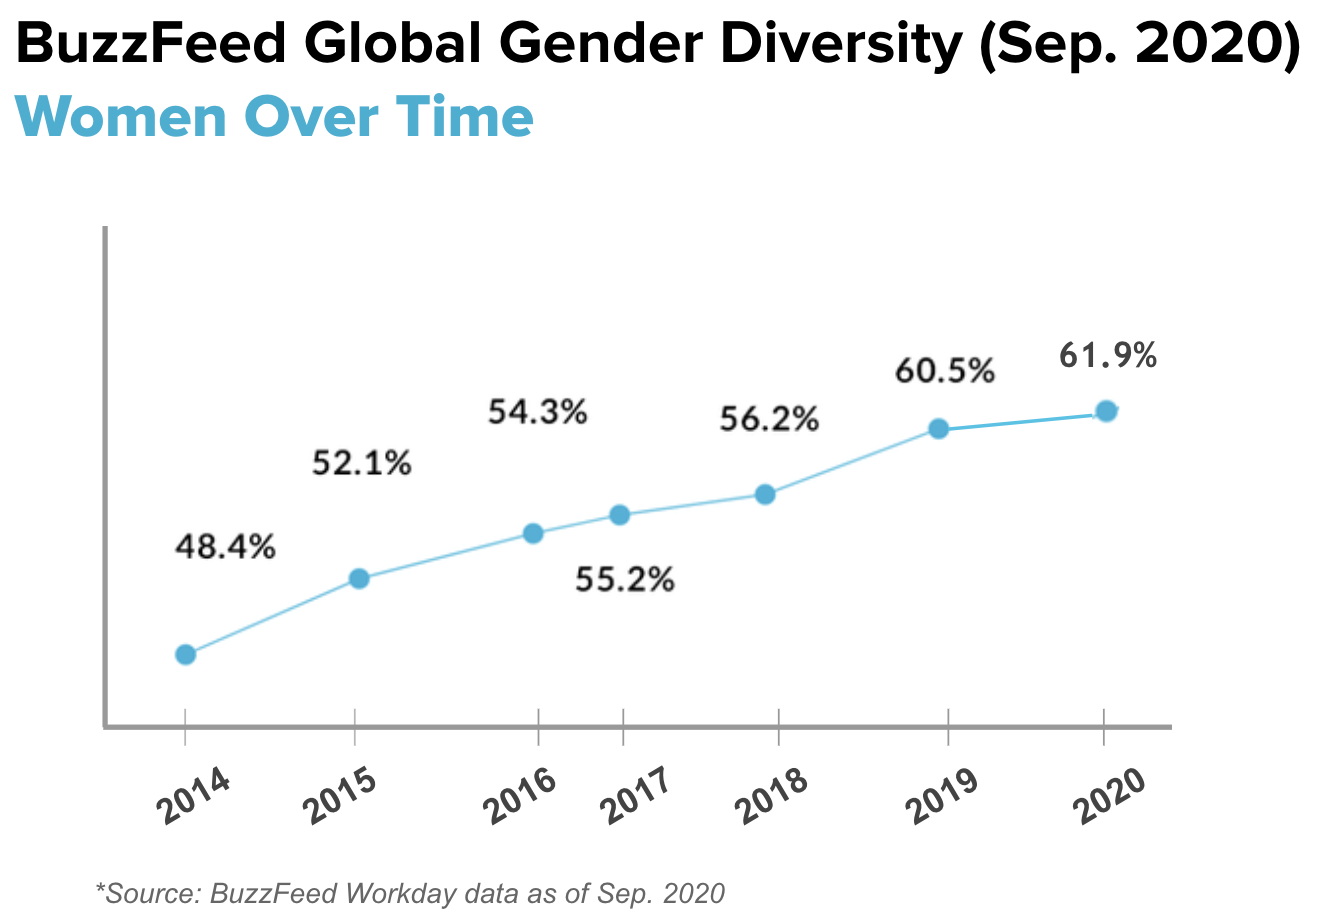 This is a line graph measuring global gender diversity at BuzzFeed, based on data from 2014 to September 2020, showing growth over time.